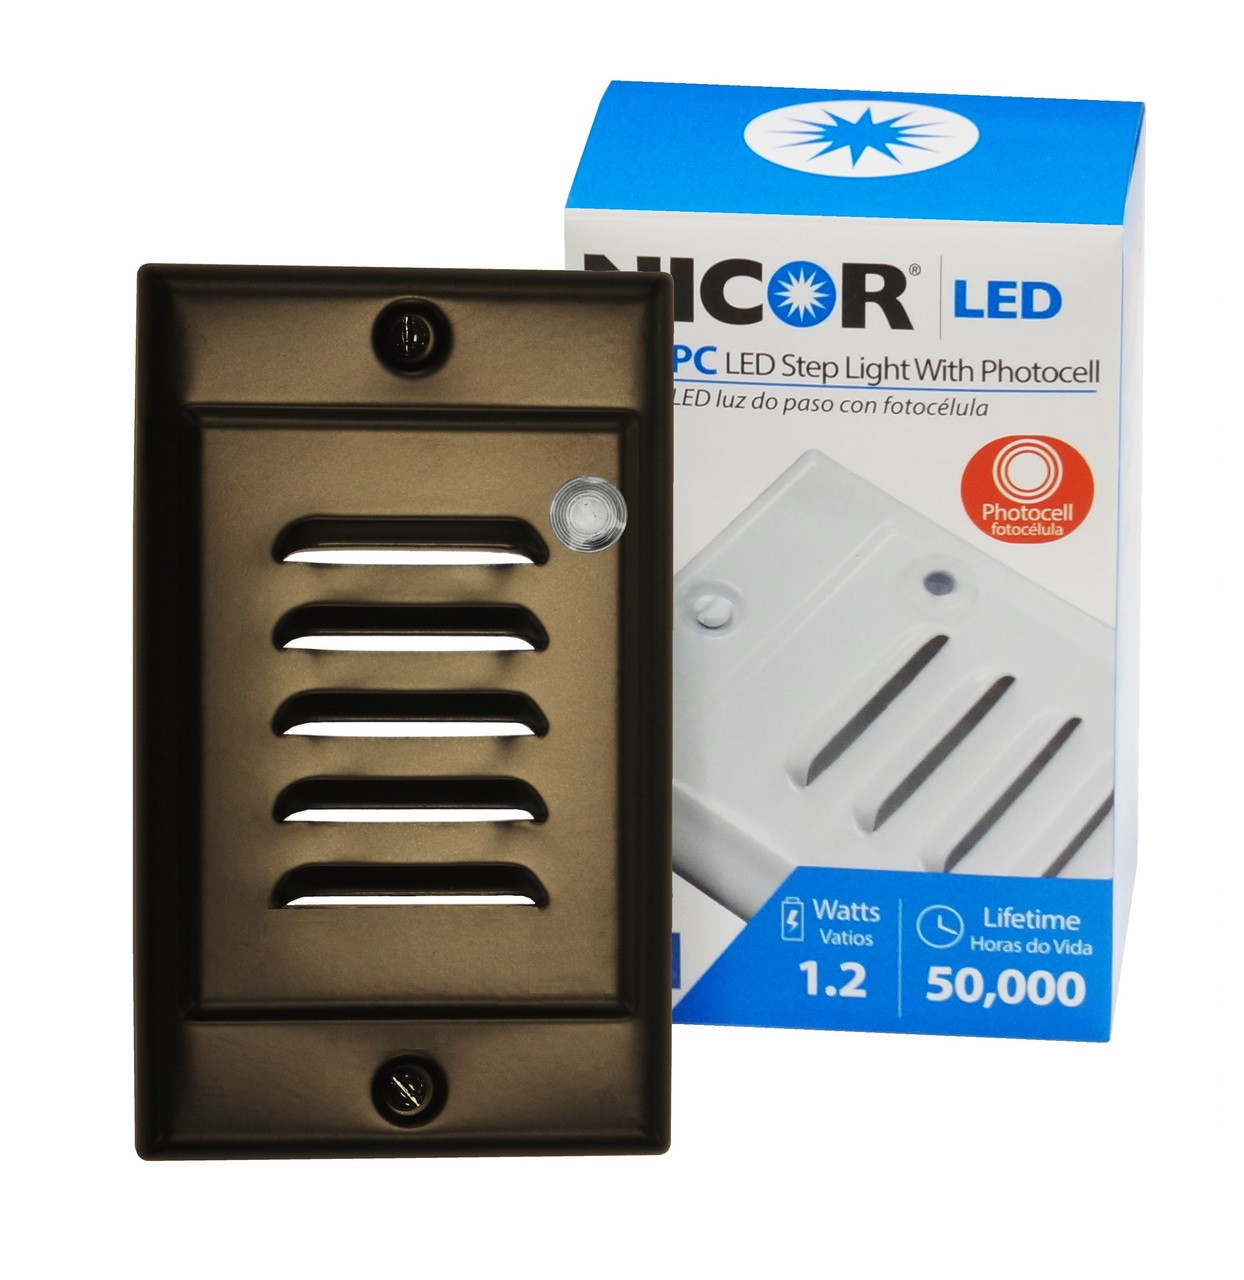 Nicor Lighting Stp 10 120 Vob Pc Led Step Light With Photocell Photocells For Lights Sensor Including Oil Rubbed Bronze Vertical Faceplate